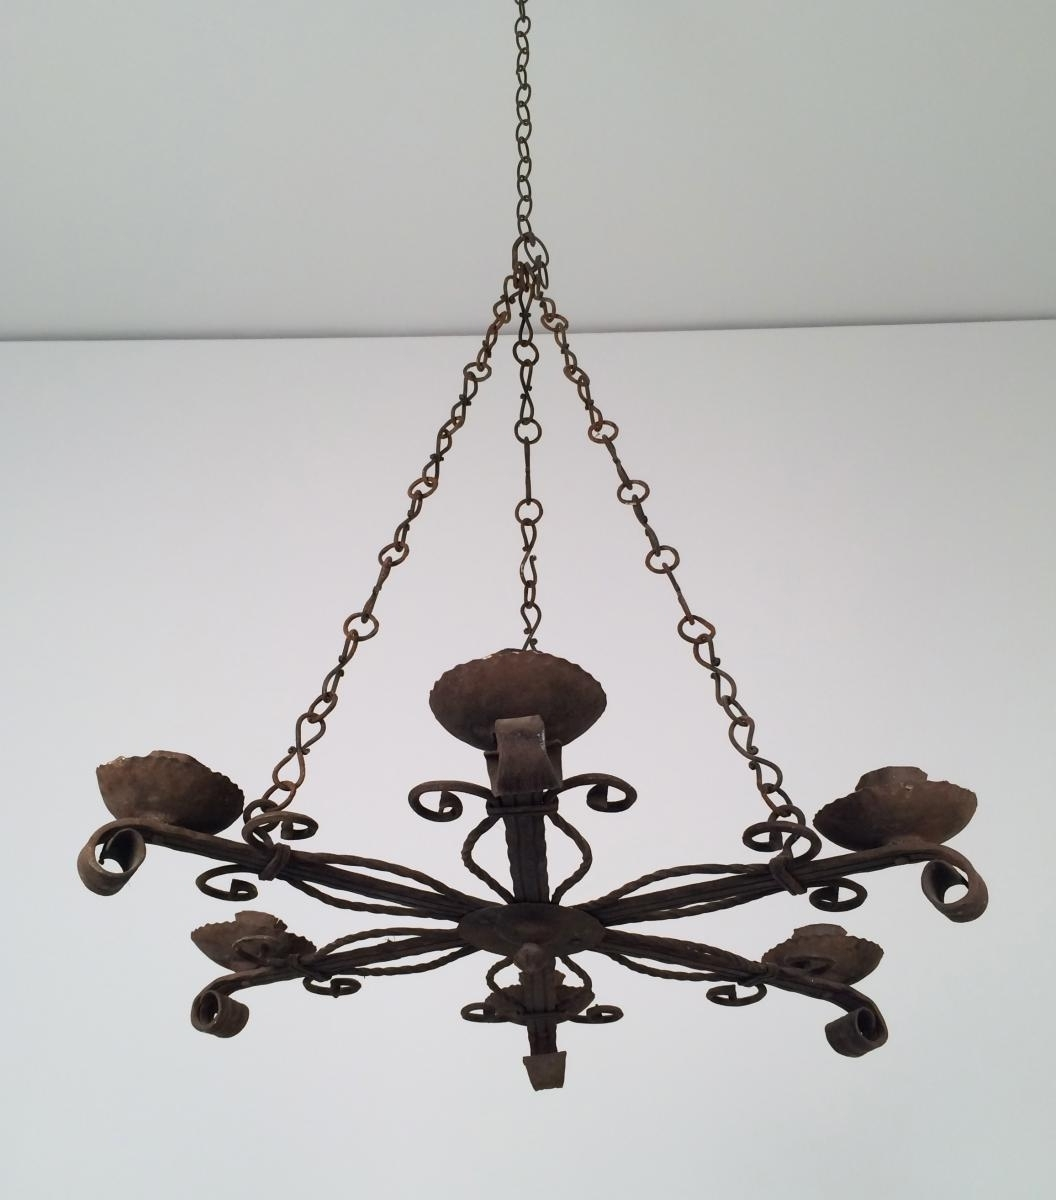 Wrought Iron Chandelier With 5 Candle Holders, 1920s For Sale At Pamono Regarding Preferred Wrought Iron Chandelier (View 3 of 20)